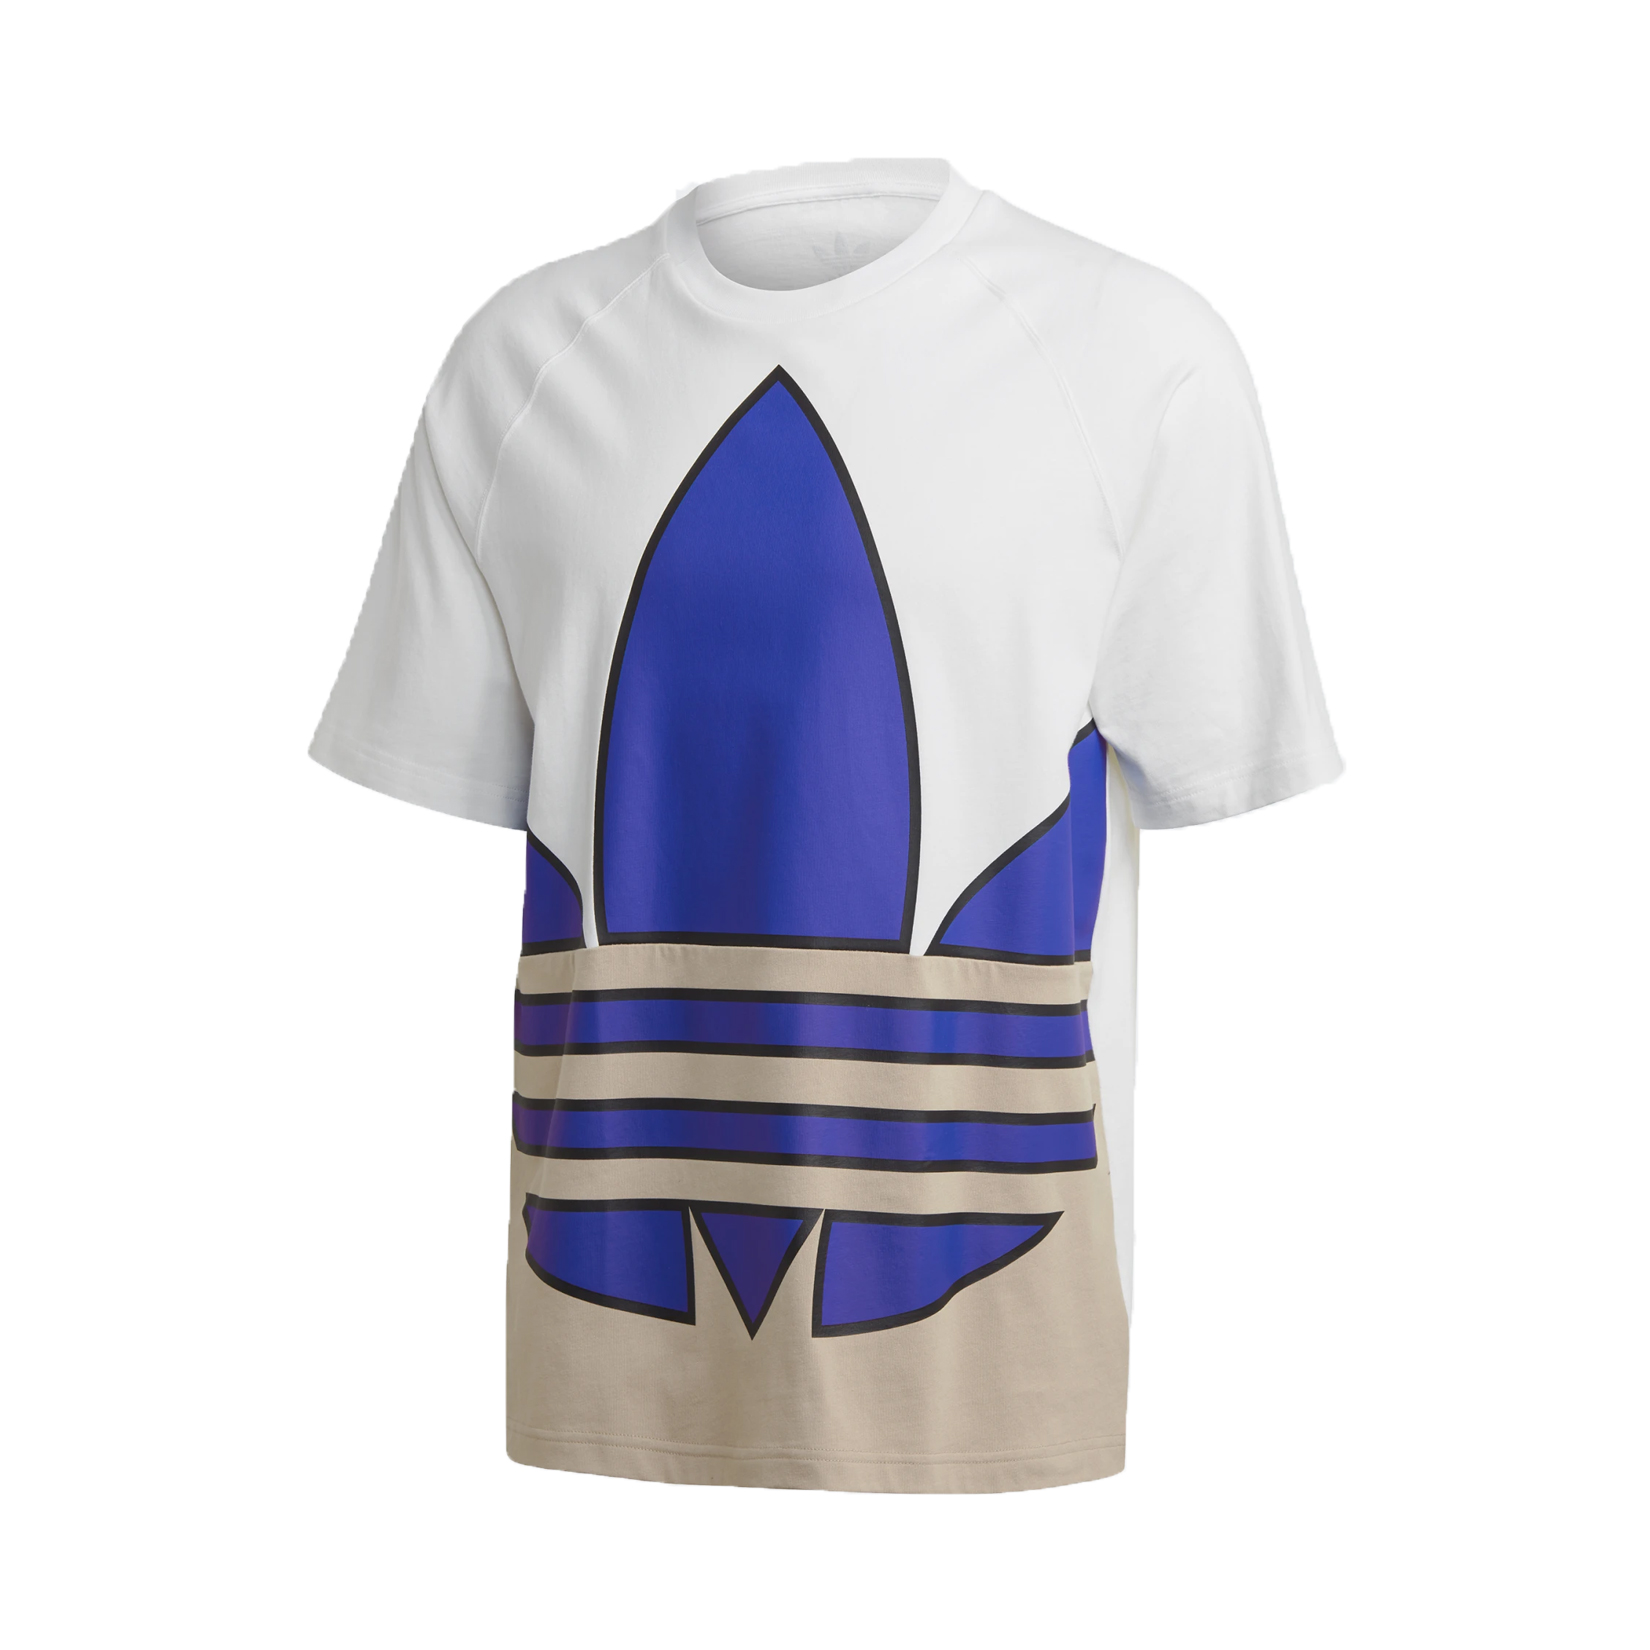 Adidas Originals Big Trefoil Colorblock Tee White